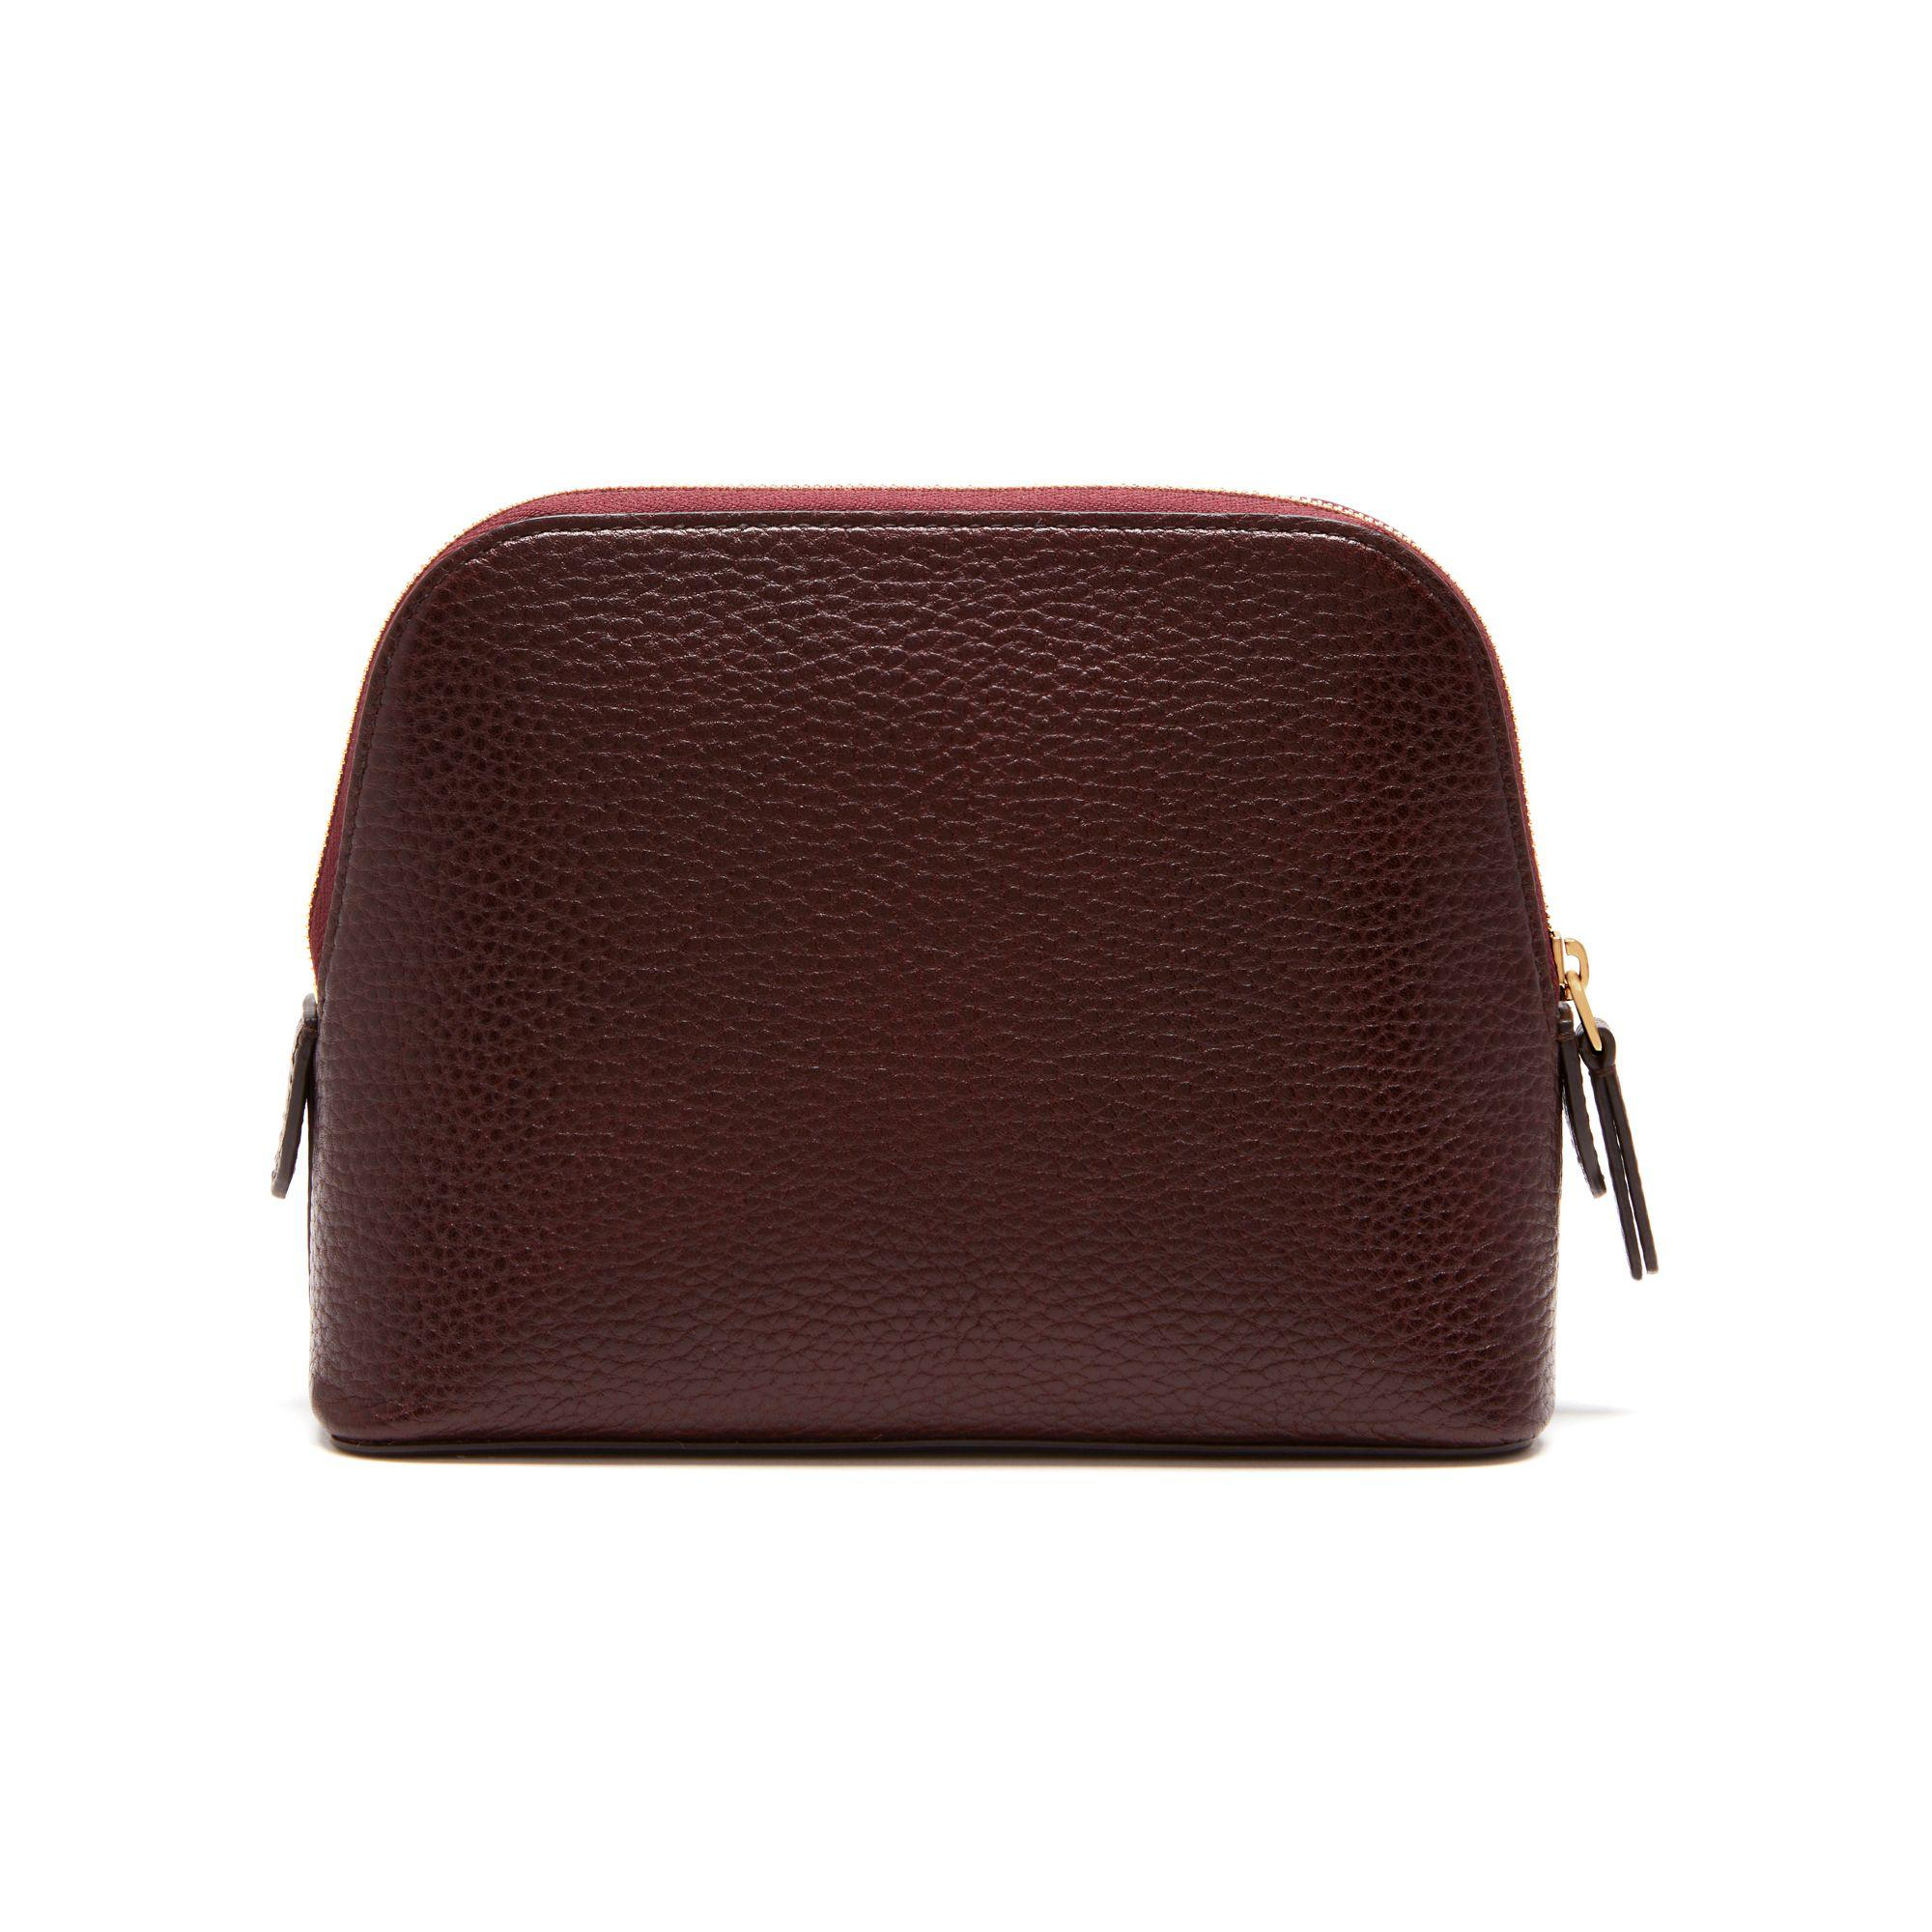 4edcb79ea64e ... bayswater tote c0216 c0604  top quality mulberry multicolor cosmetic  pouch lyst. view fullscreen 049f5 772a4